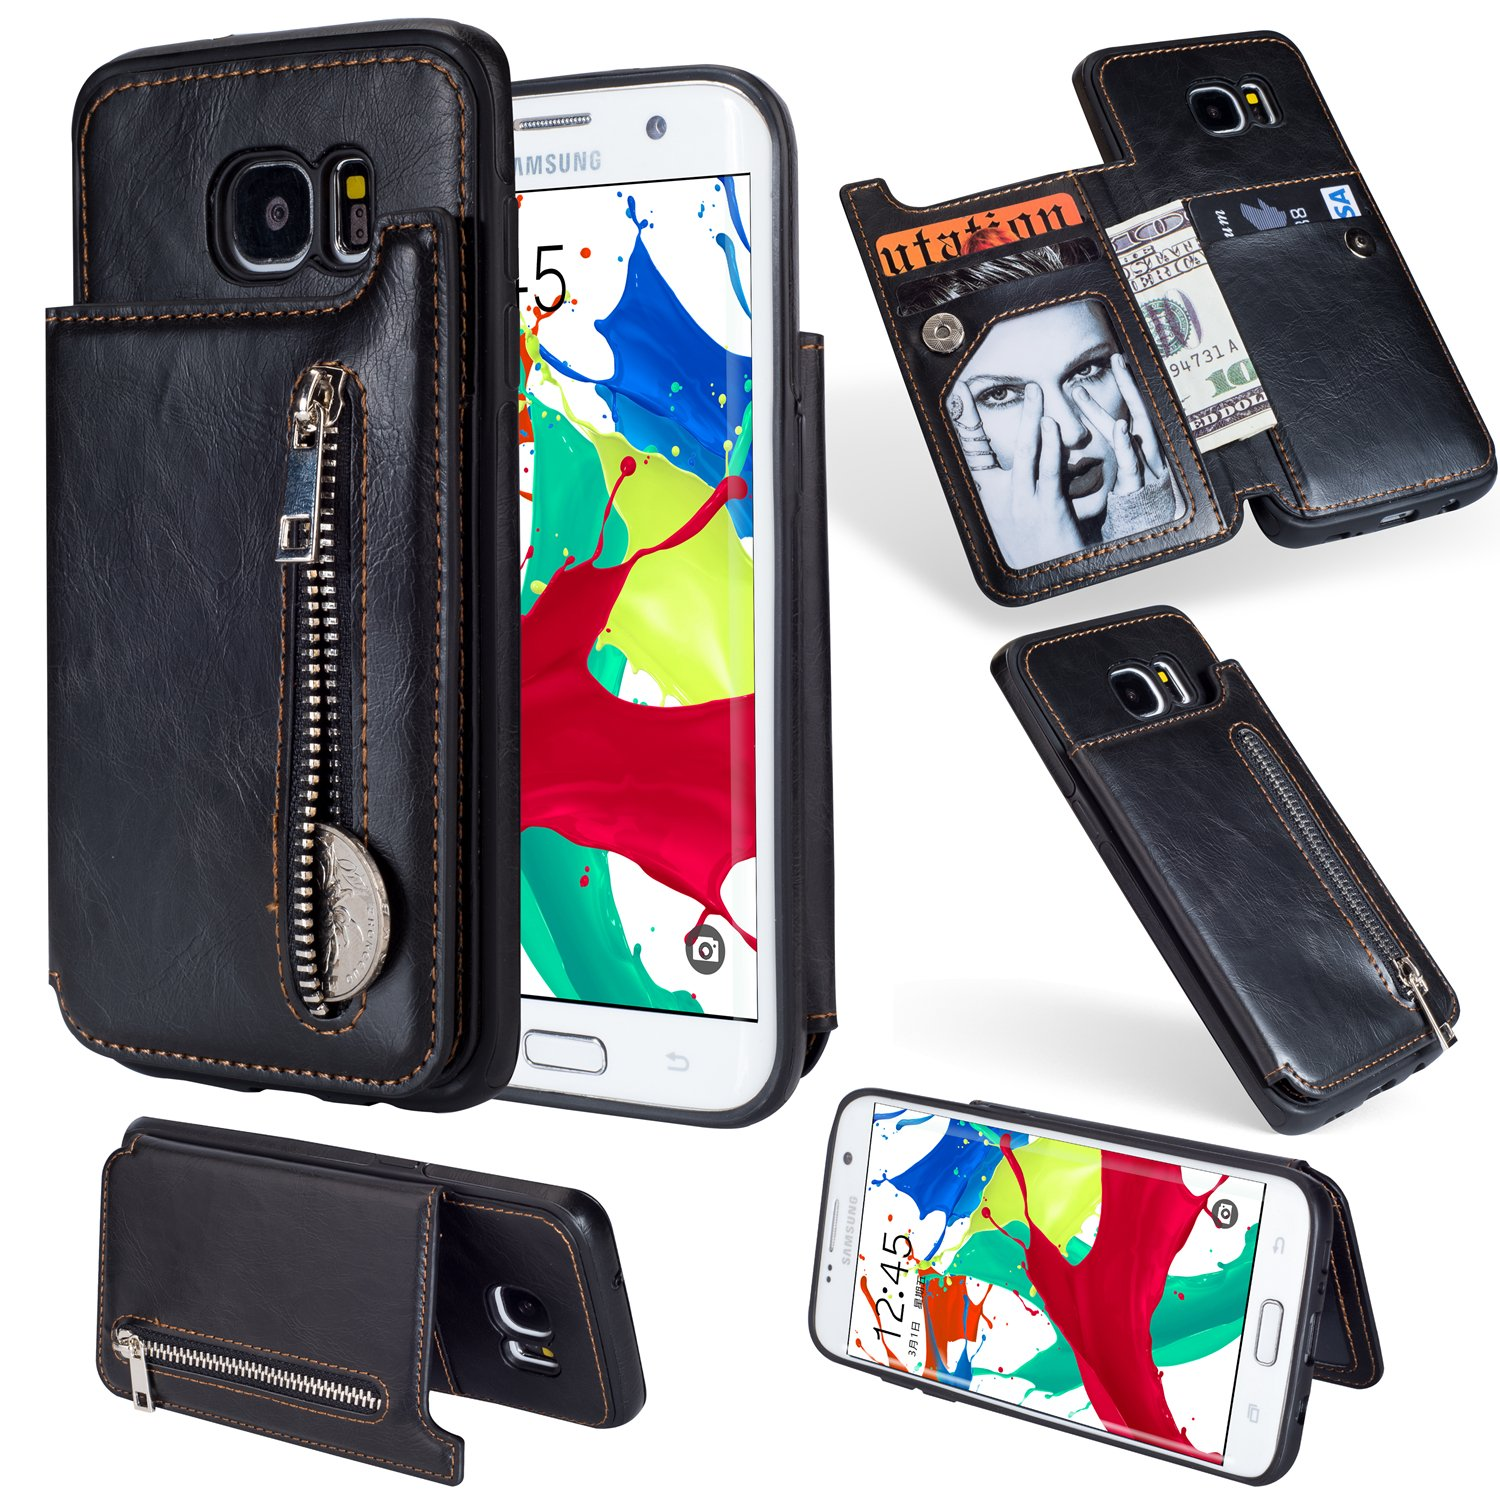 Zipper Wallet Case for Samsung Galaxy S7,Shinyzone Samsung Galaxy S7 Case with Money Pocket [One Magnetic Buckle] Premium Vintage Leather PU Flip Back Cover-Black